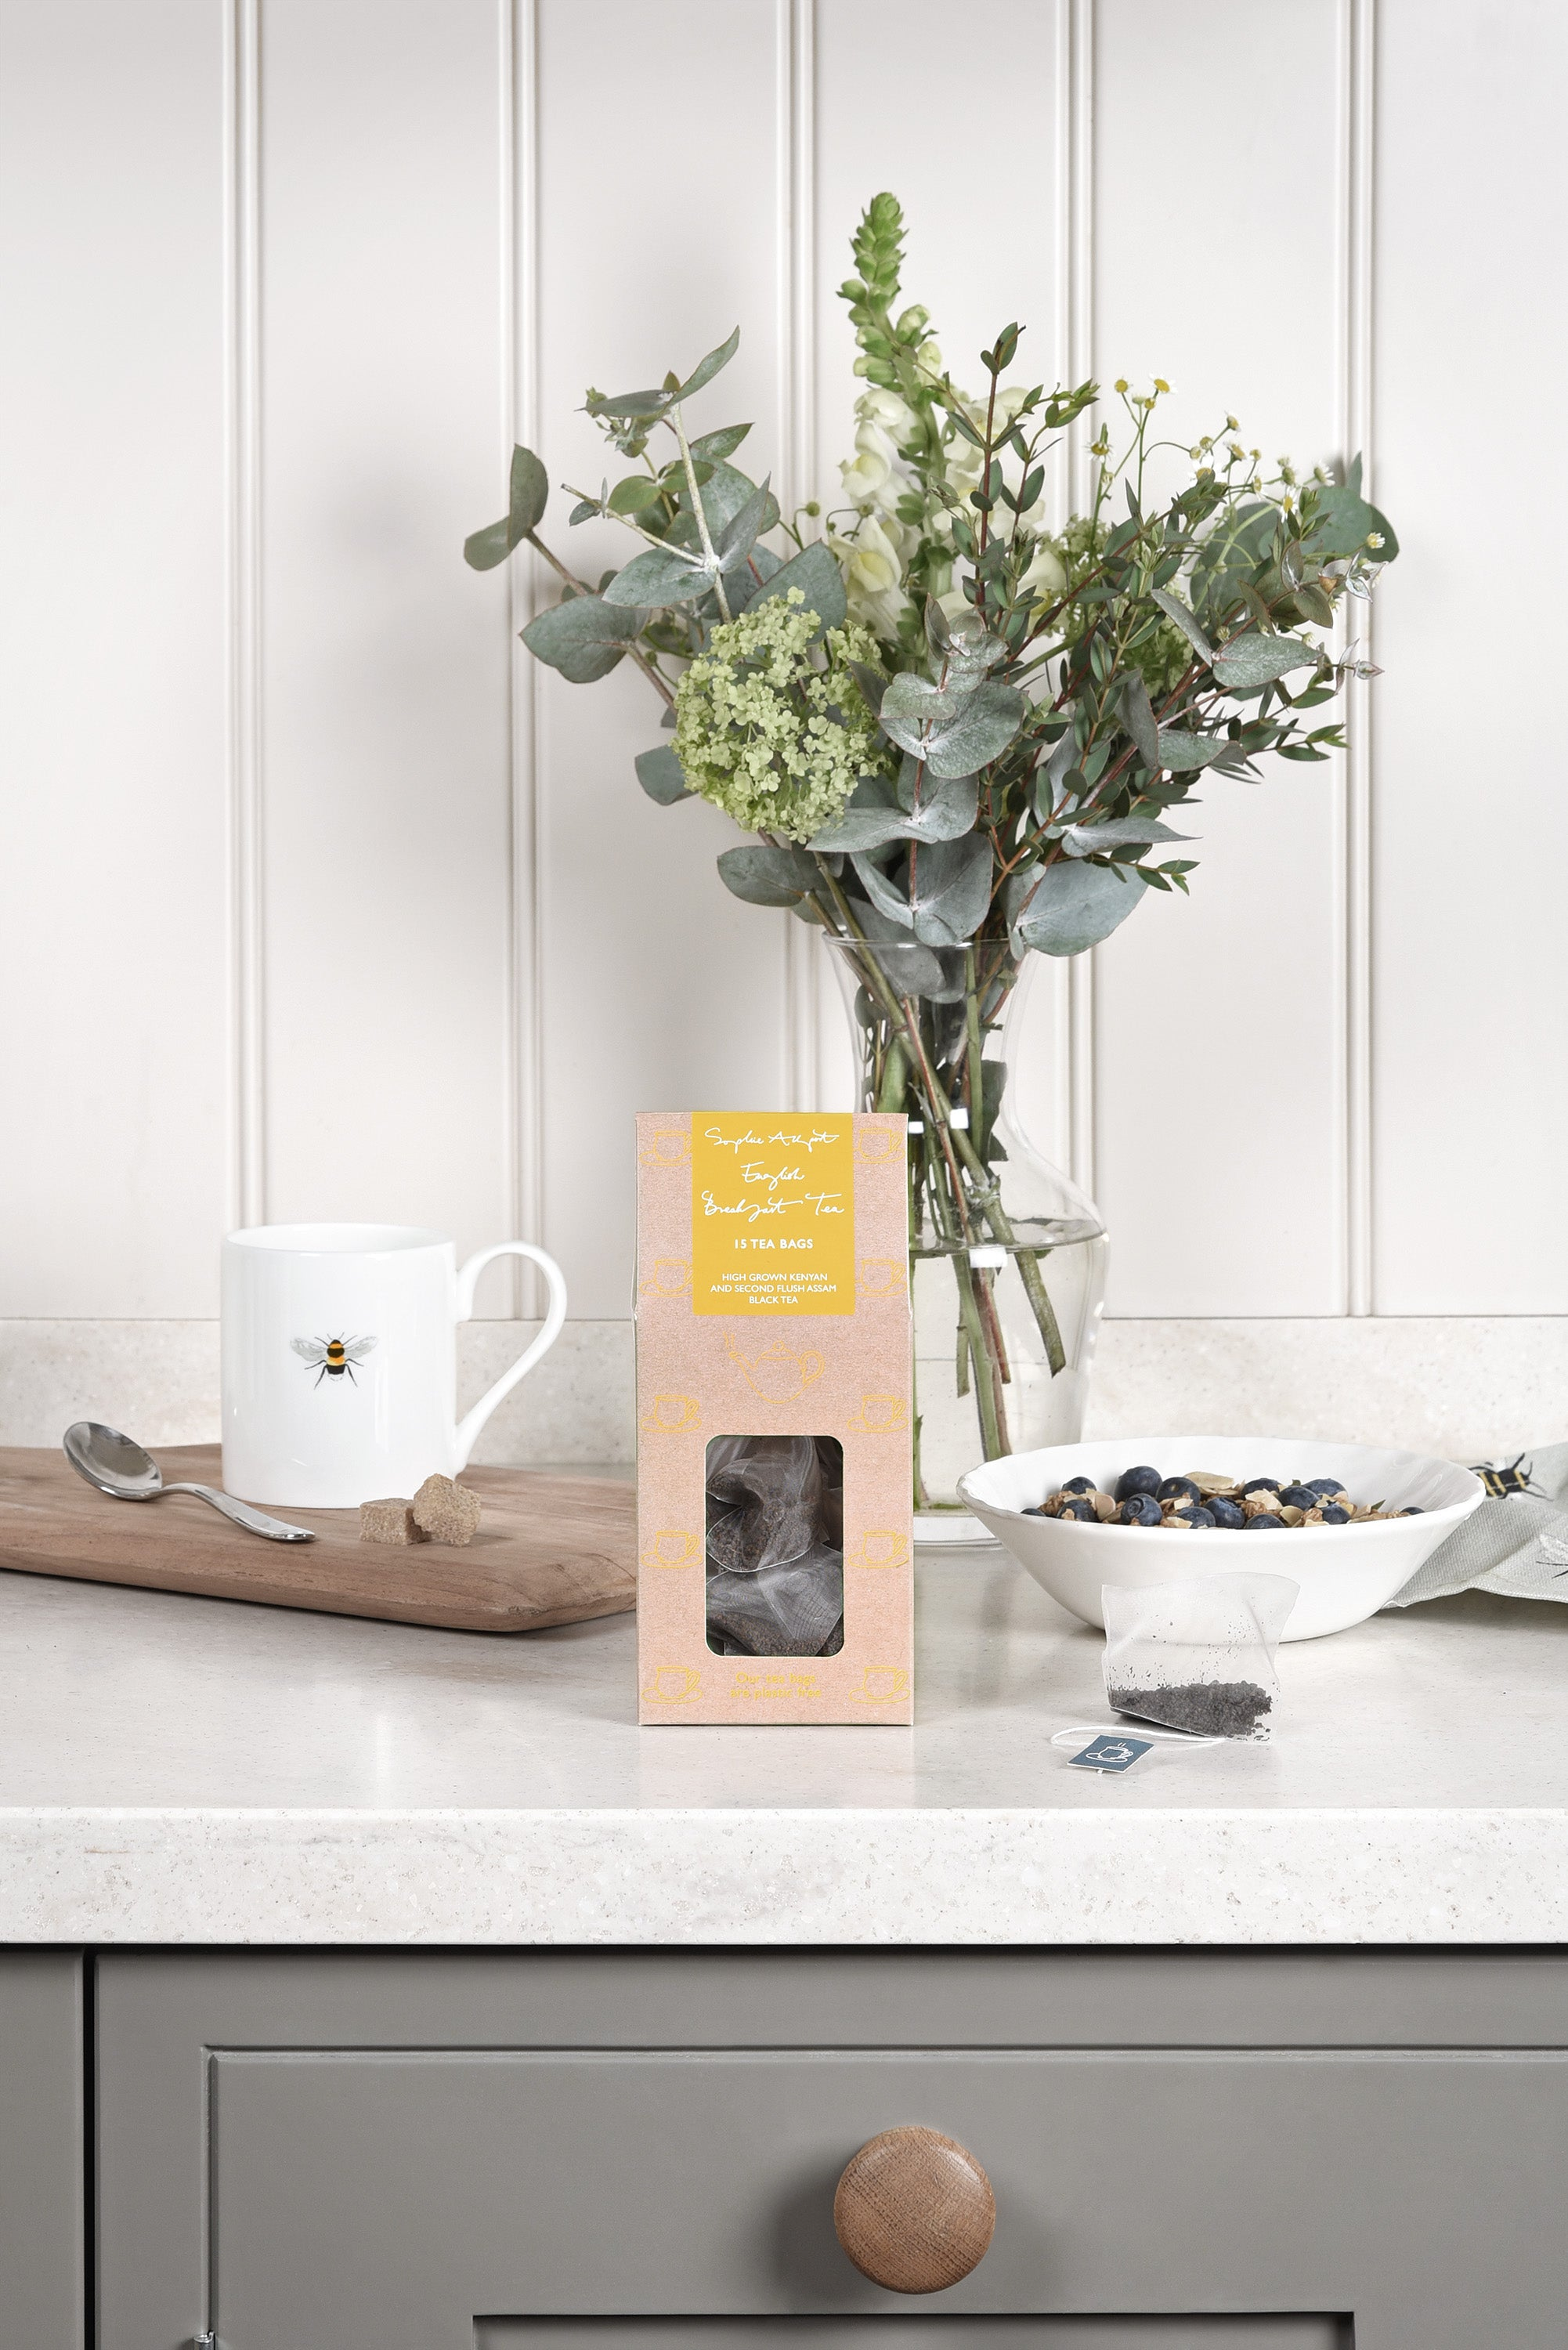 10 tea tips for the perfect cup by Sophie Allport